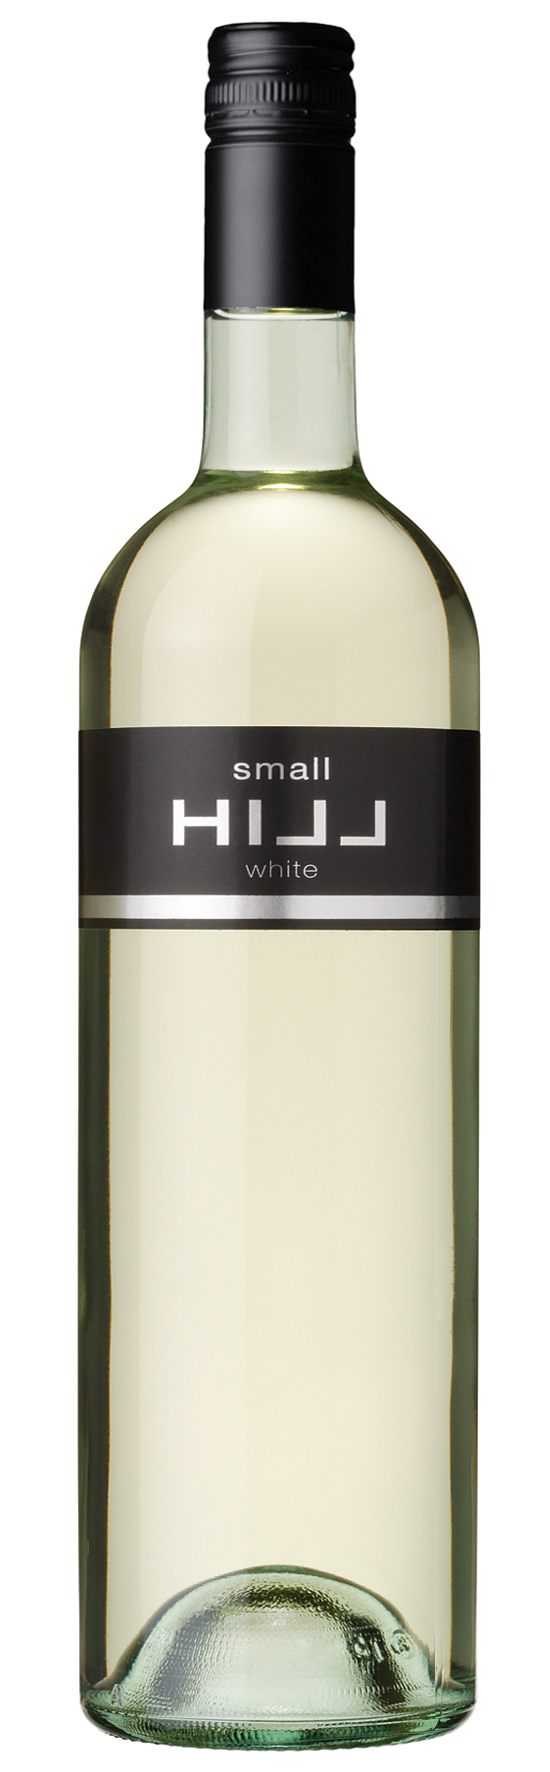 2016 SMALL HILL WHITE Leo Hillinger